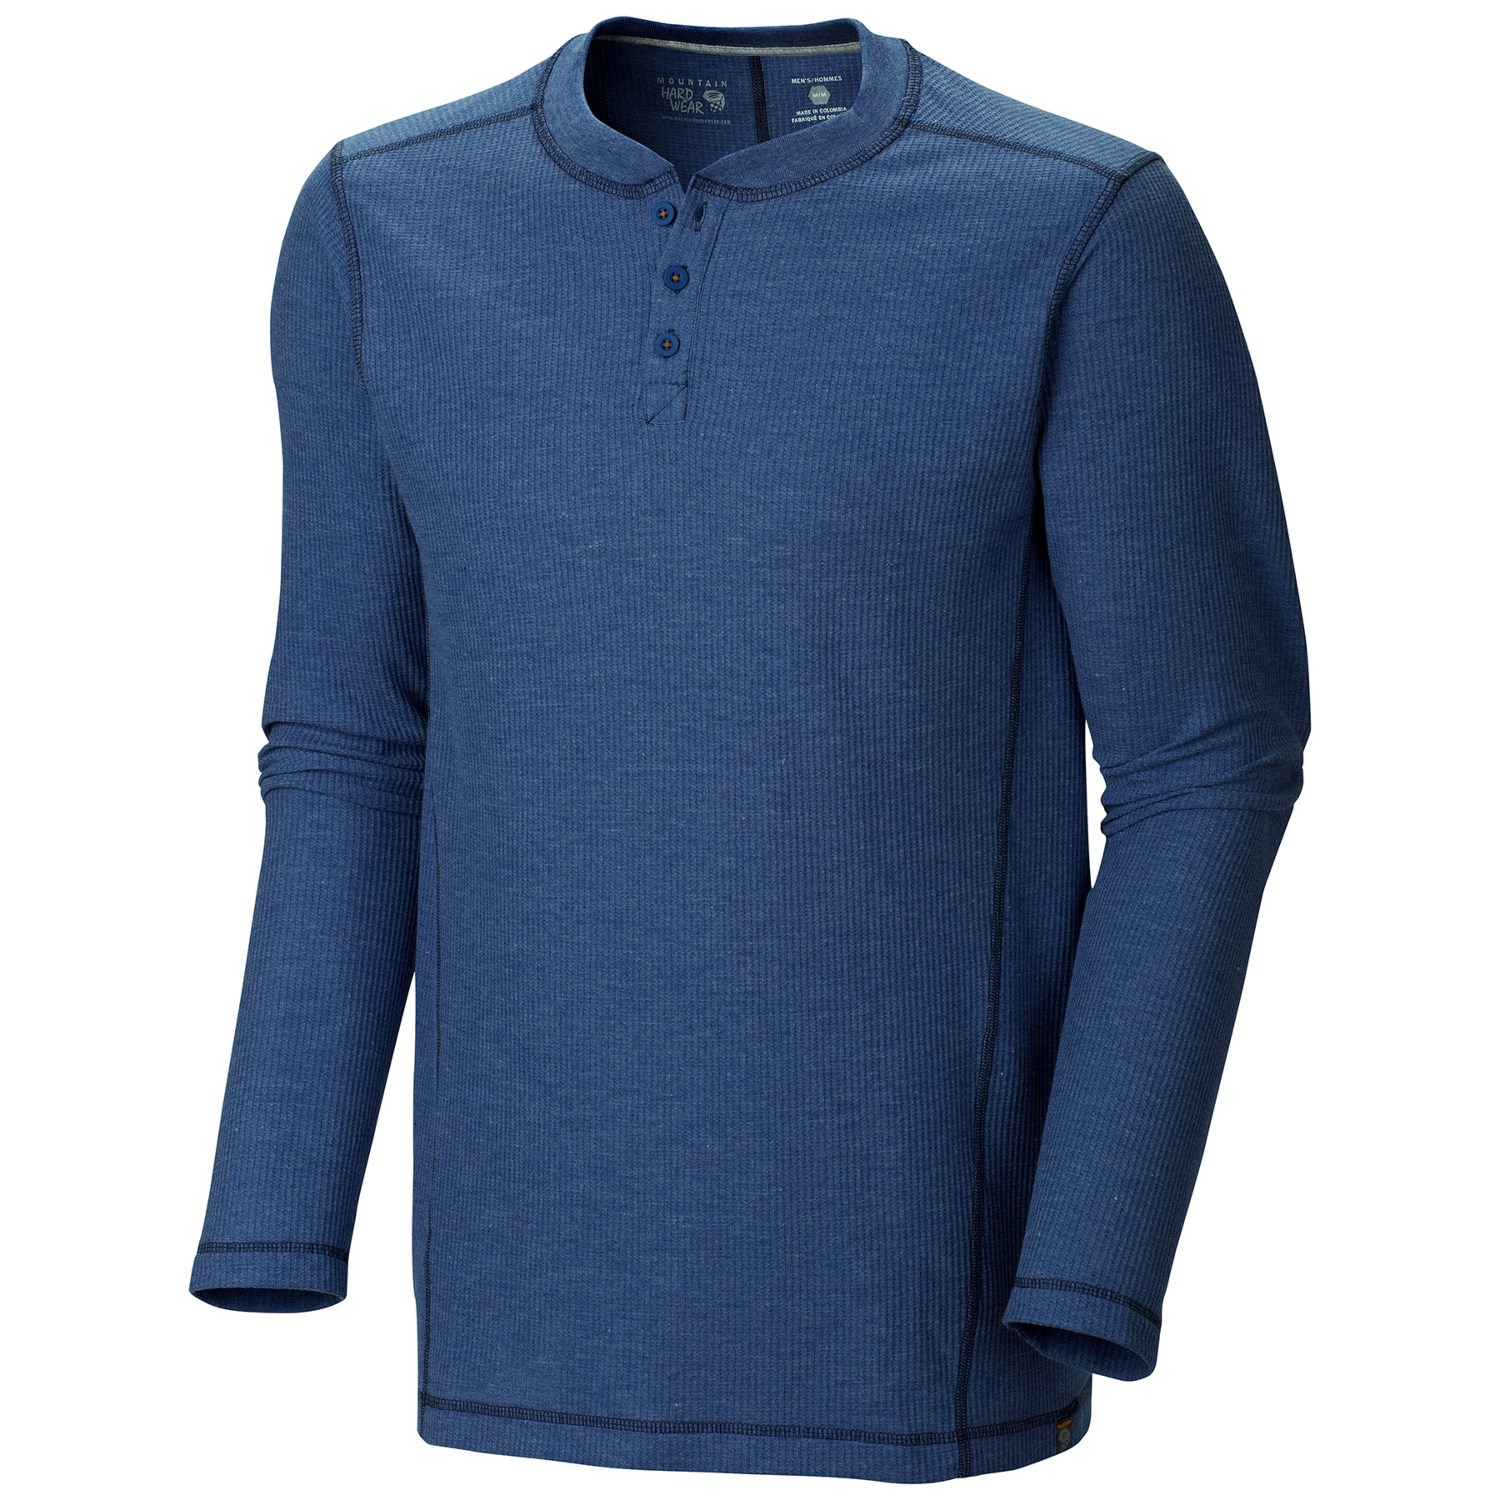 Mountain hardwear trekkin thermal henley shirt for men 8180v for Men s thermal henley long sleeve shirts